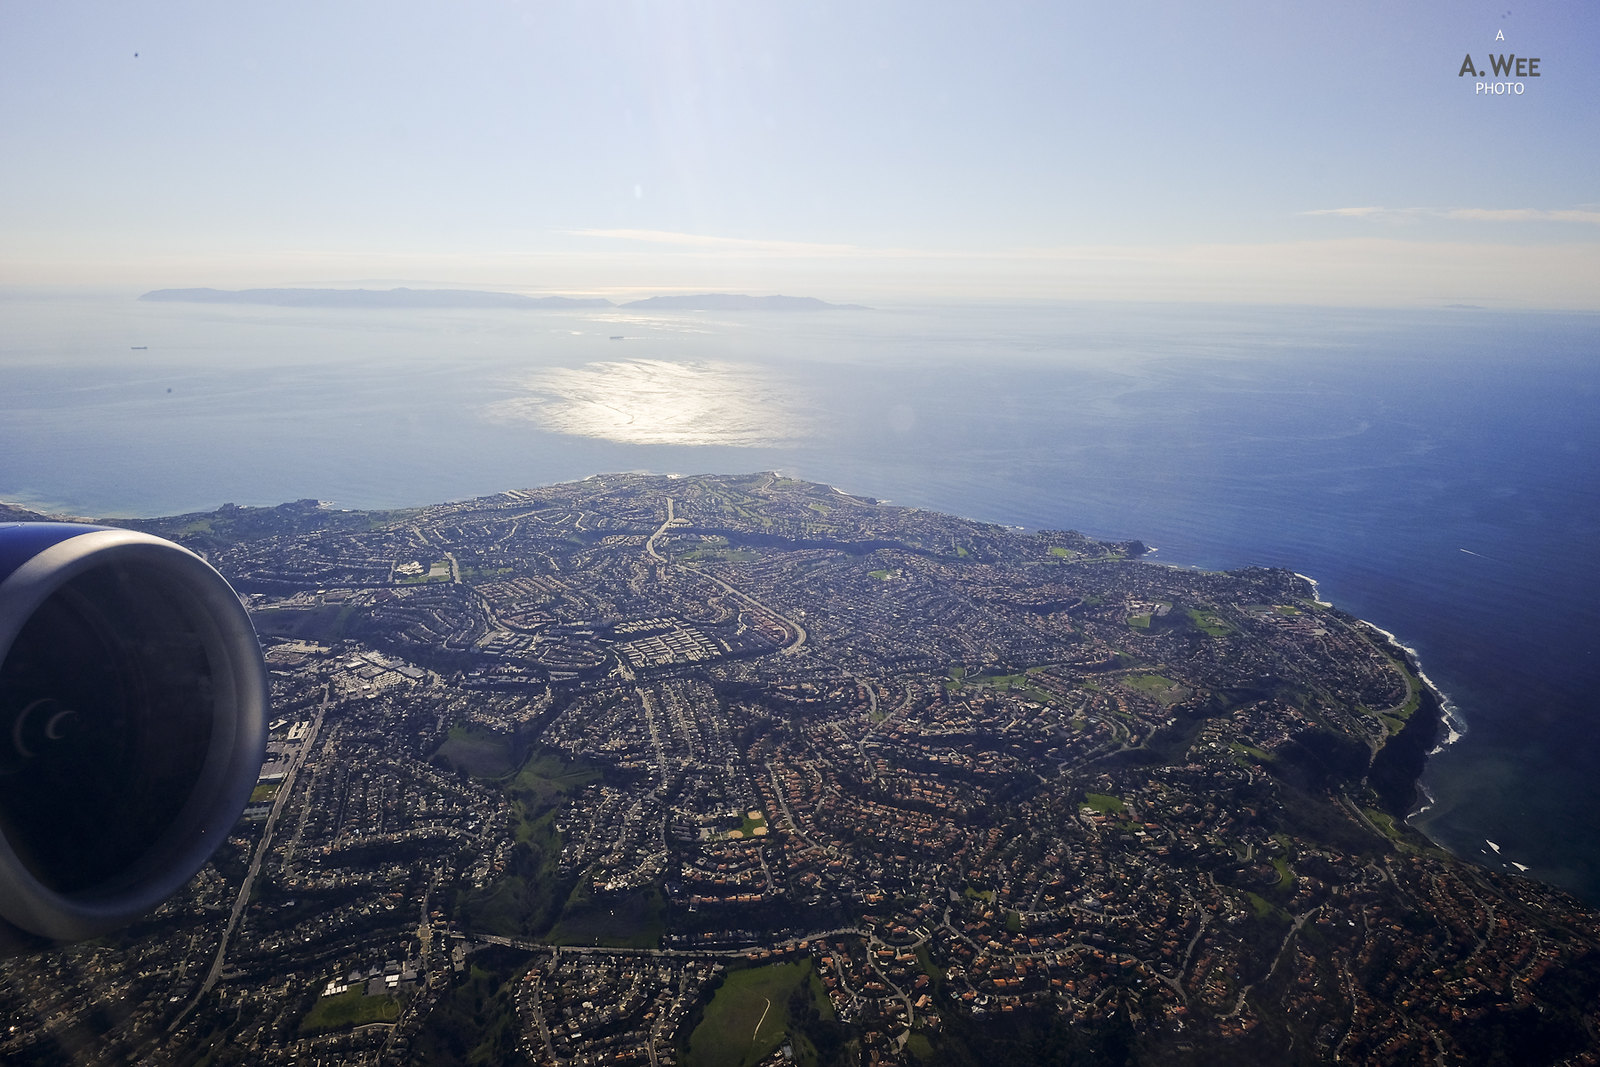 Palos Verdes from the air